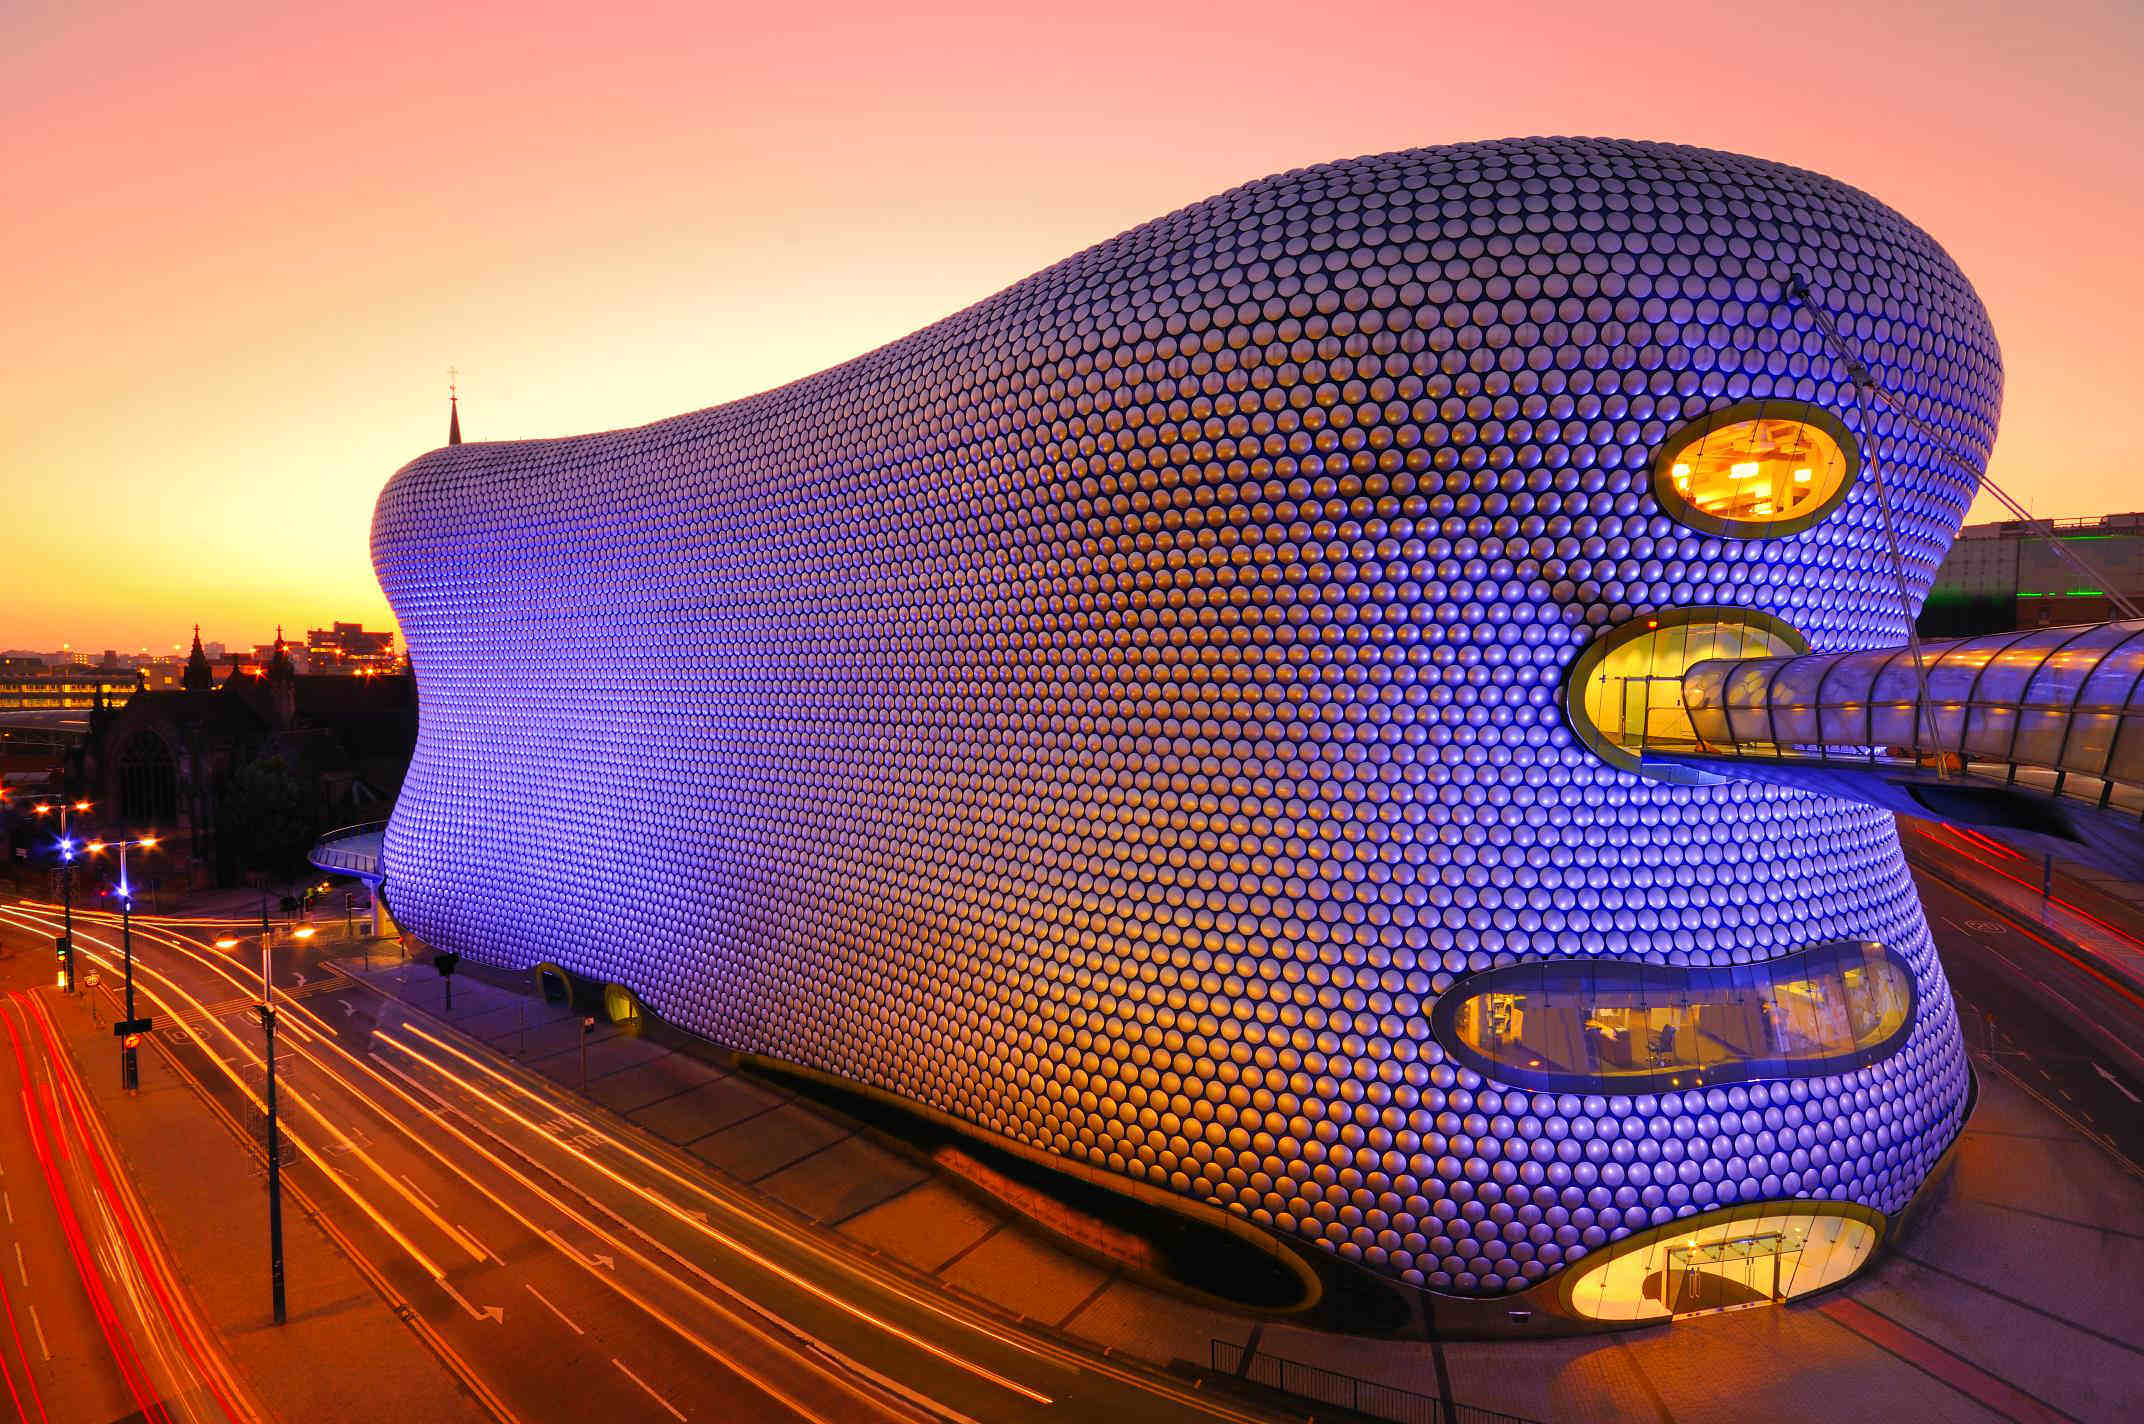 image of the ncp birmingham bullring car park